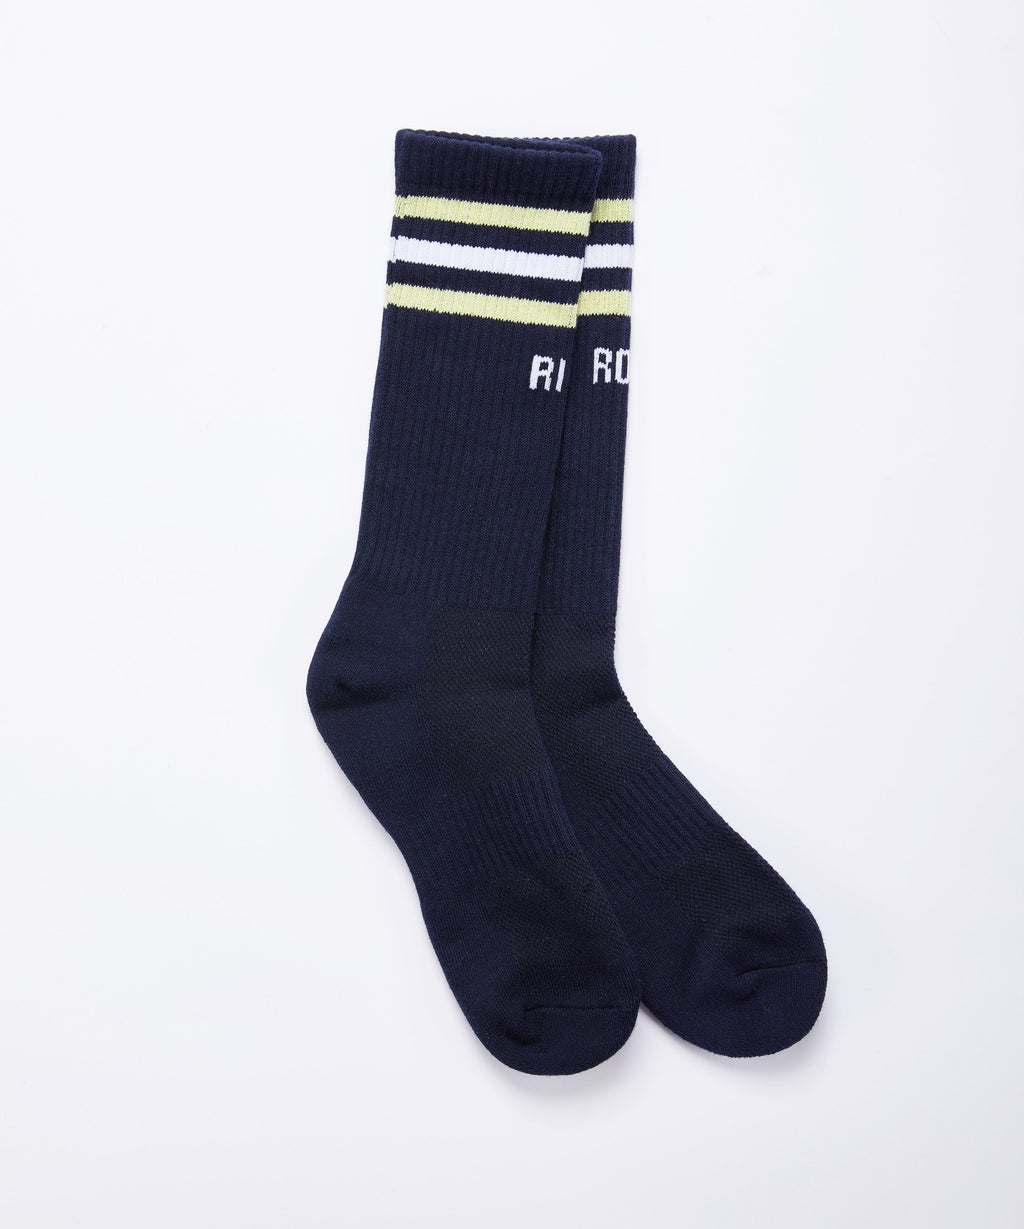 Double Up Socks - Twin Pack